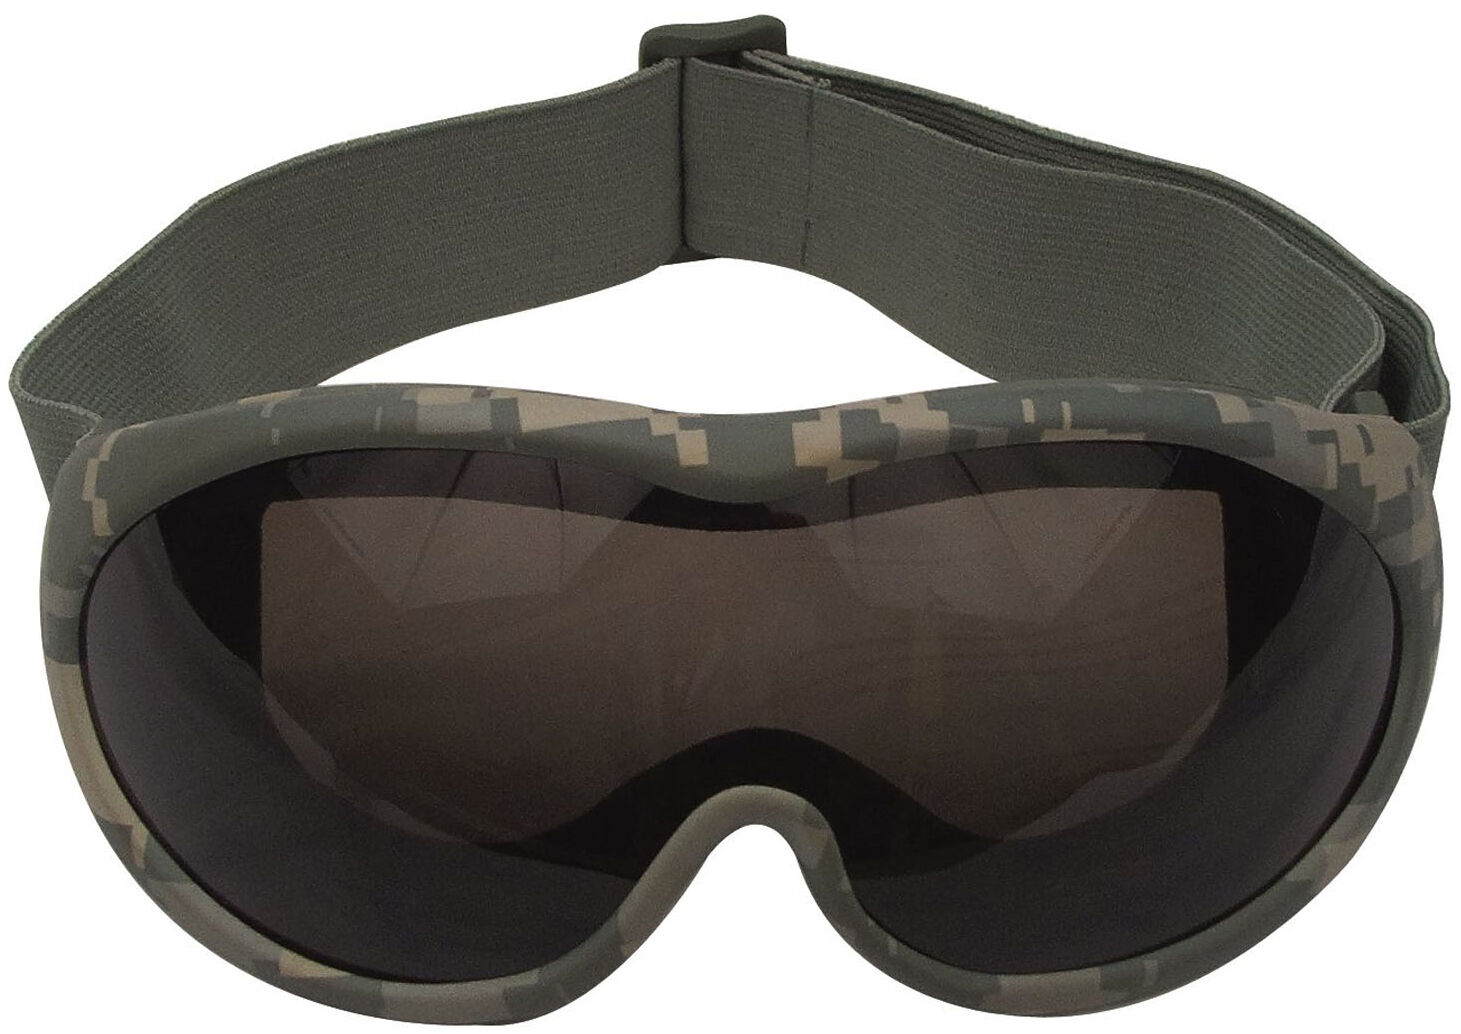 Acu Style Militaire Tactique Lunettes Désert UV Rothco 400 Protection Rothco UV 10357 eab3e1